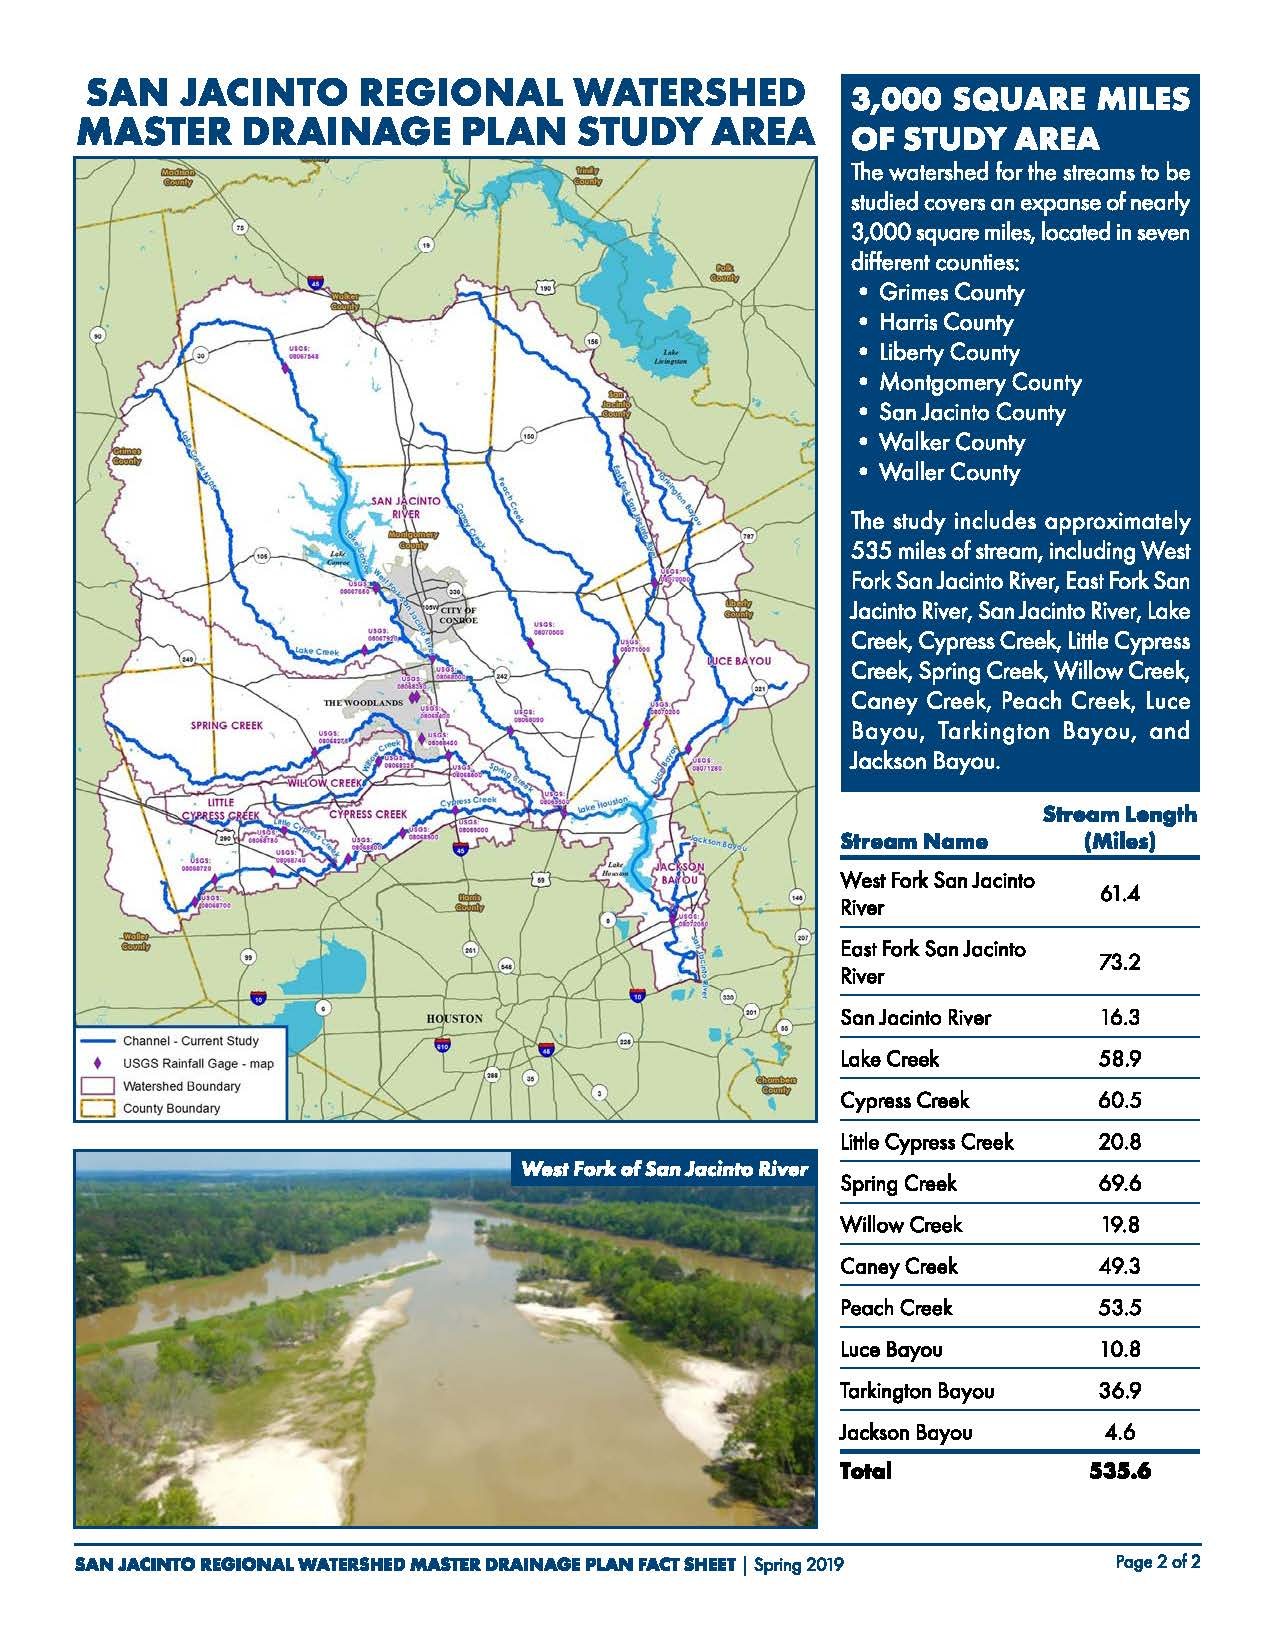 SJ Regional Watershed Master Drainage Plan Fact Sheet_Spring 2019_Page_2